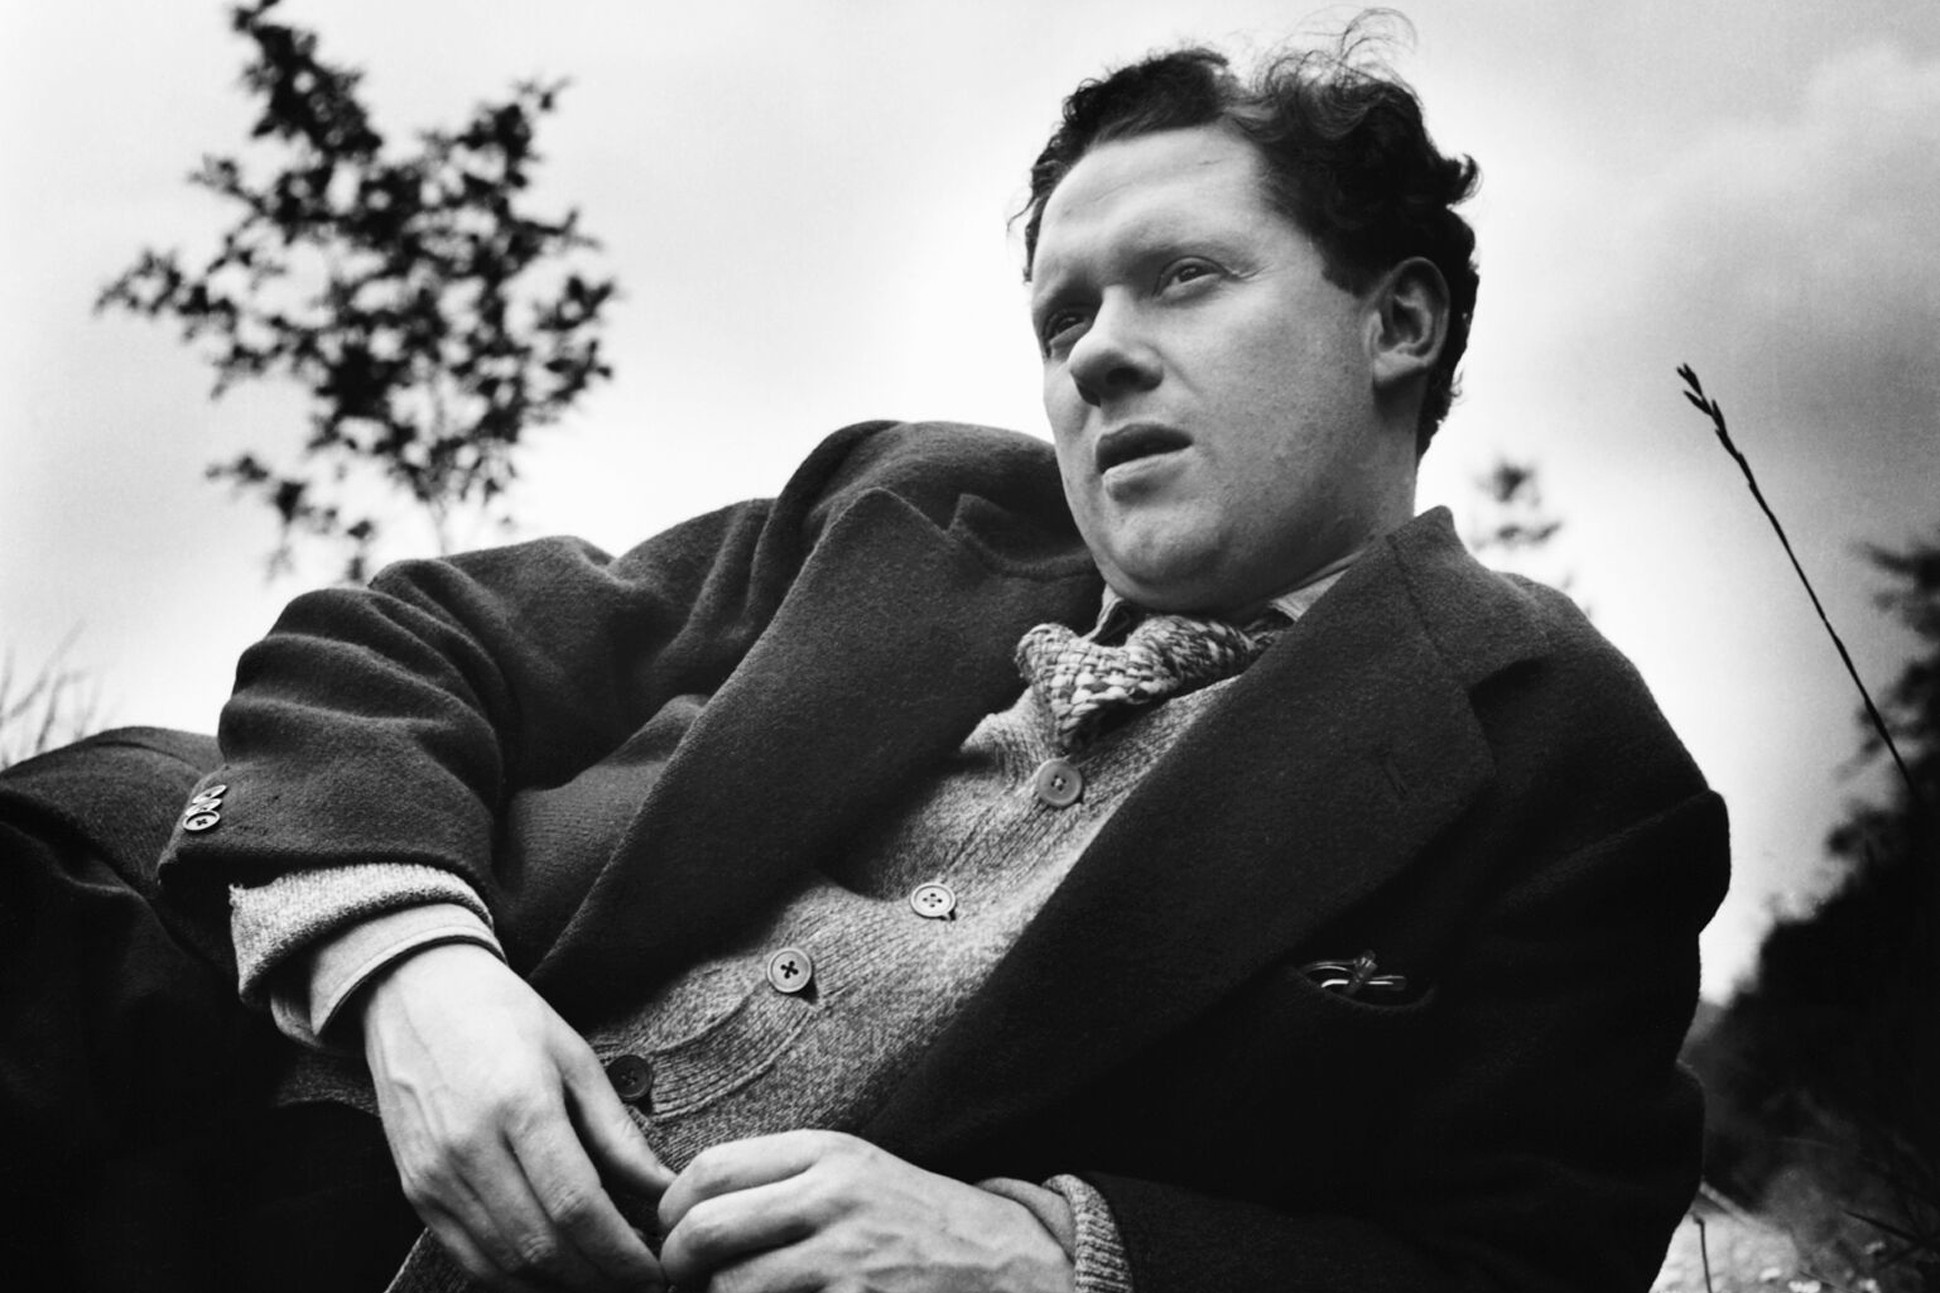 Black and white photograph of Dylan Thomas.